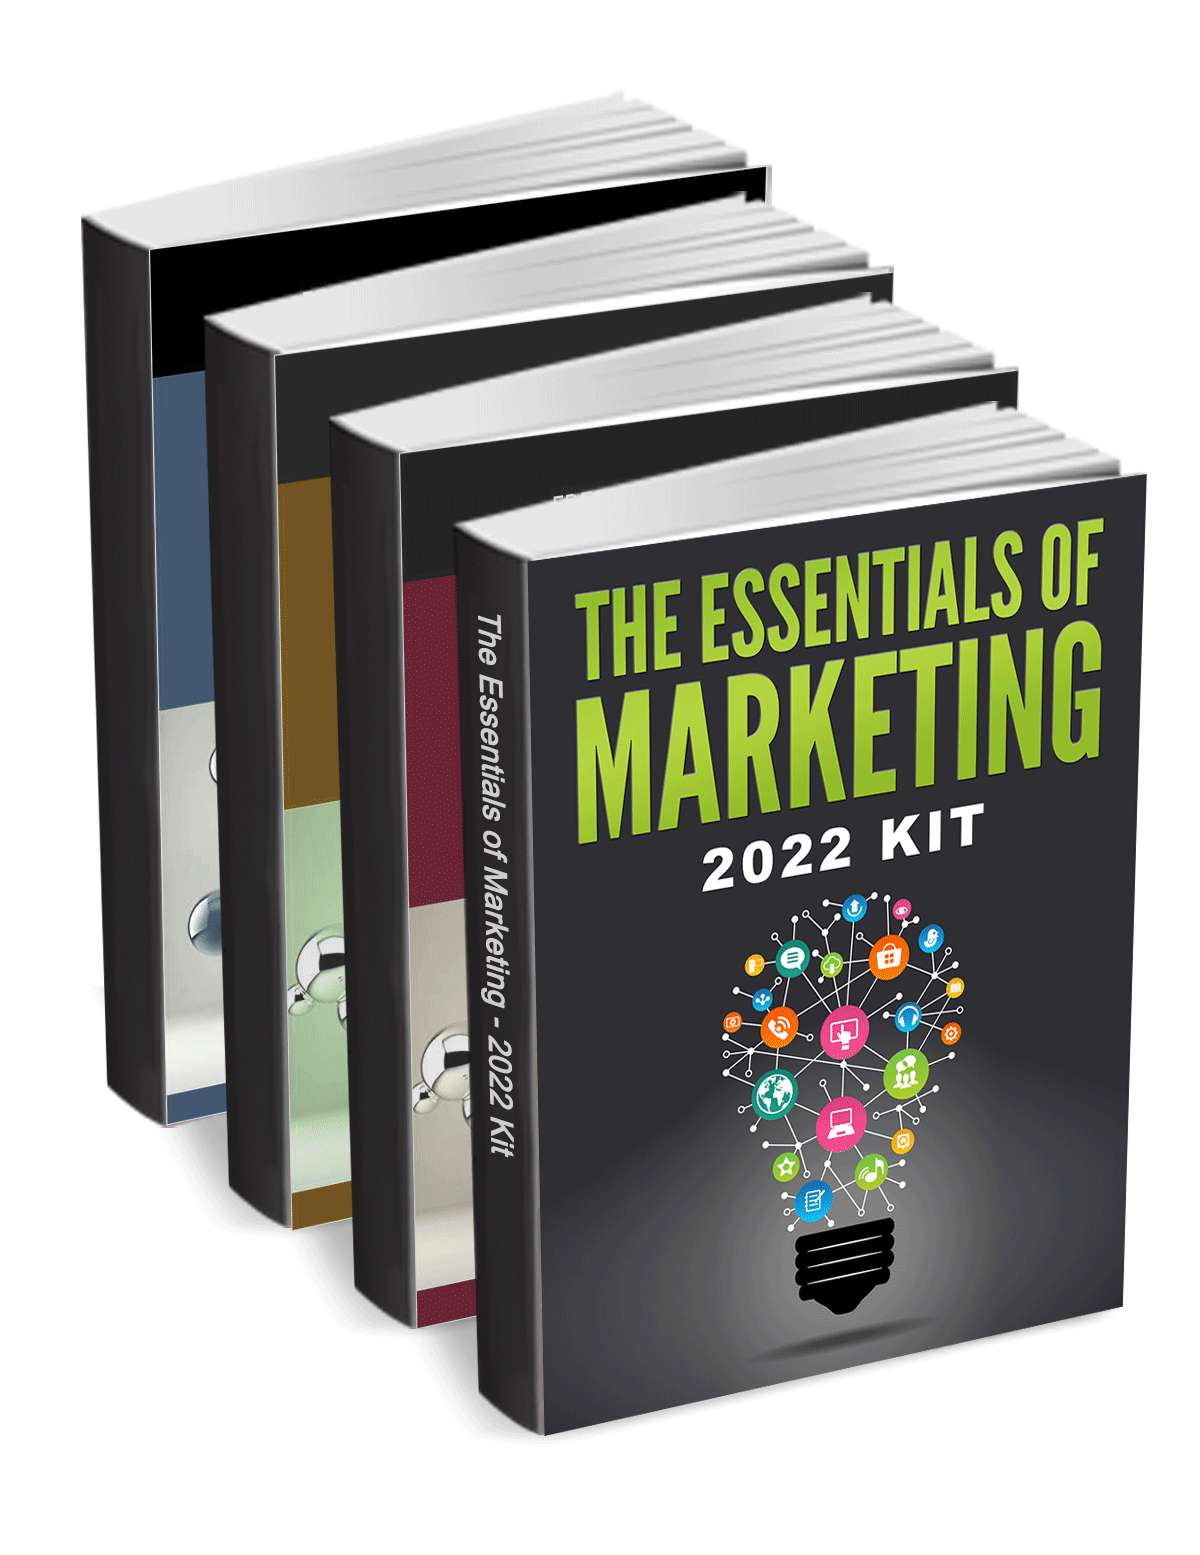 The Essentials of Marketing - Summer 2019 Kit